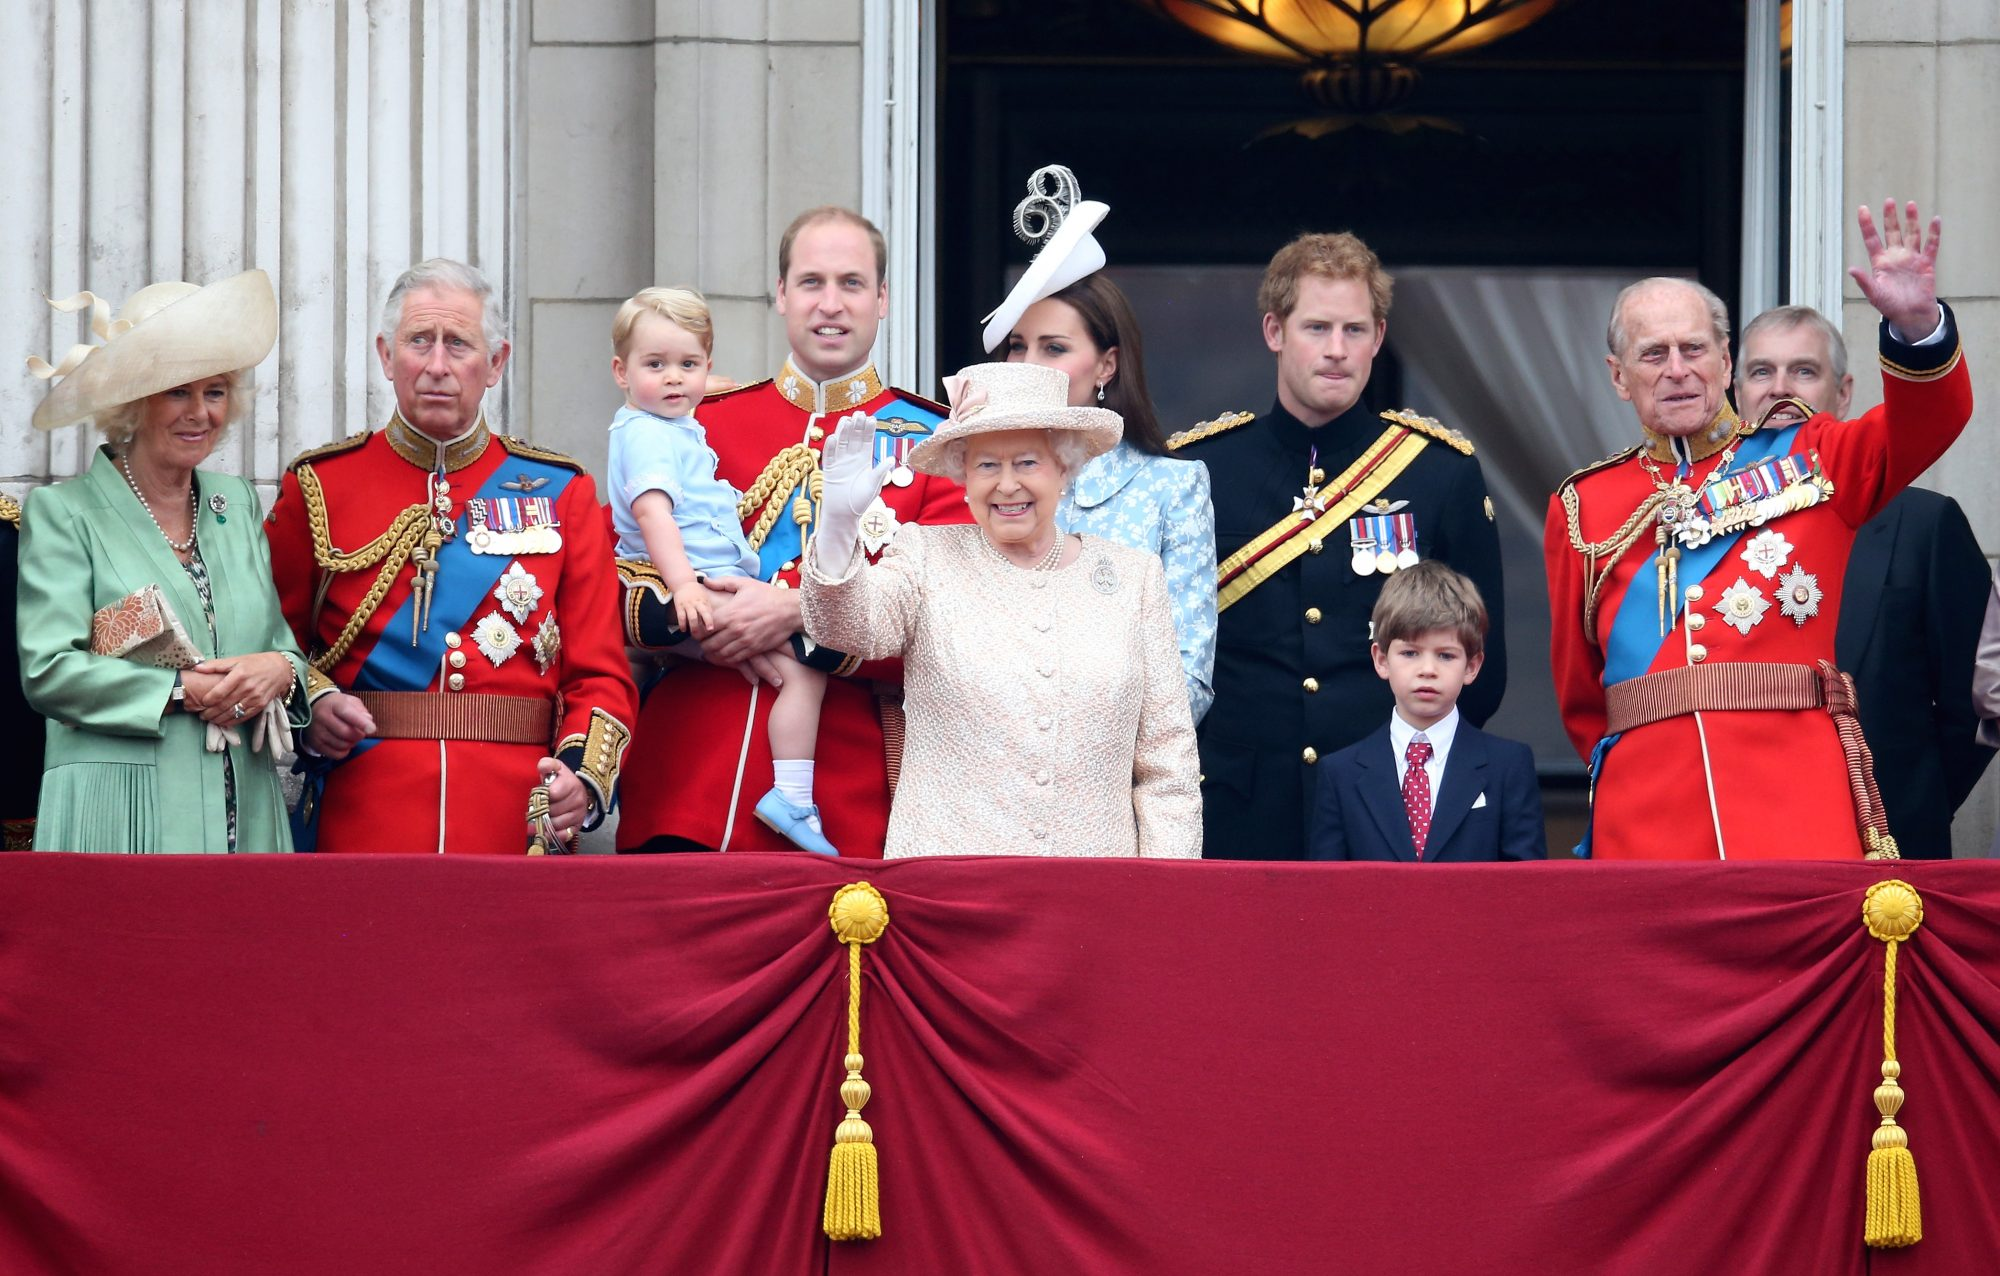 Picking the Royal First Names